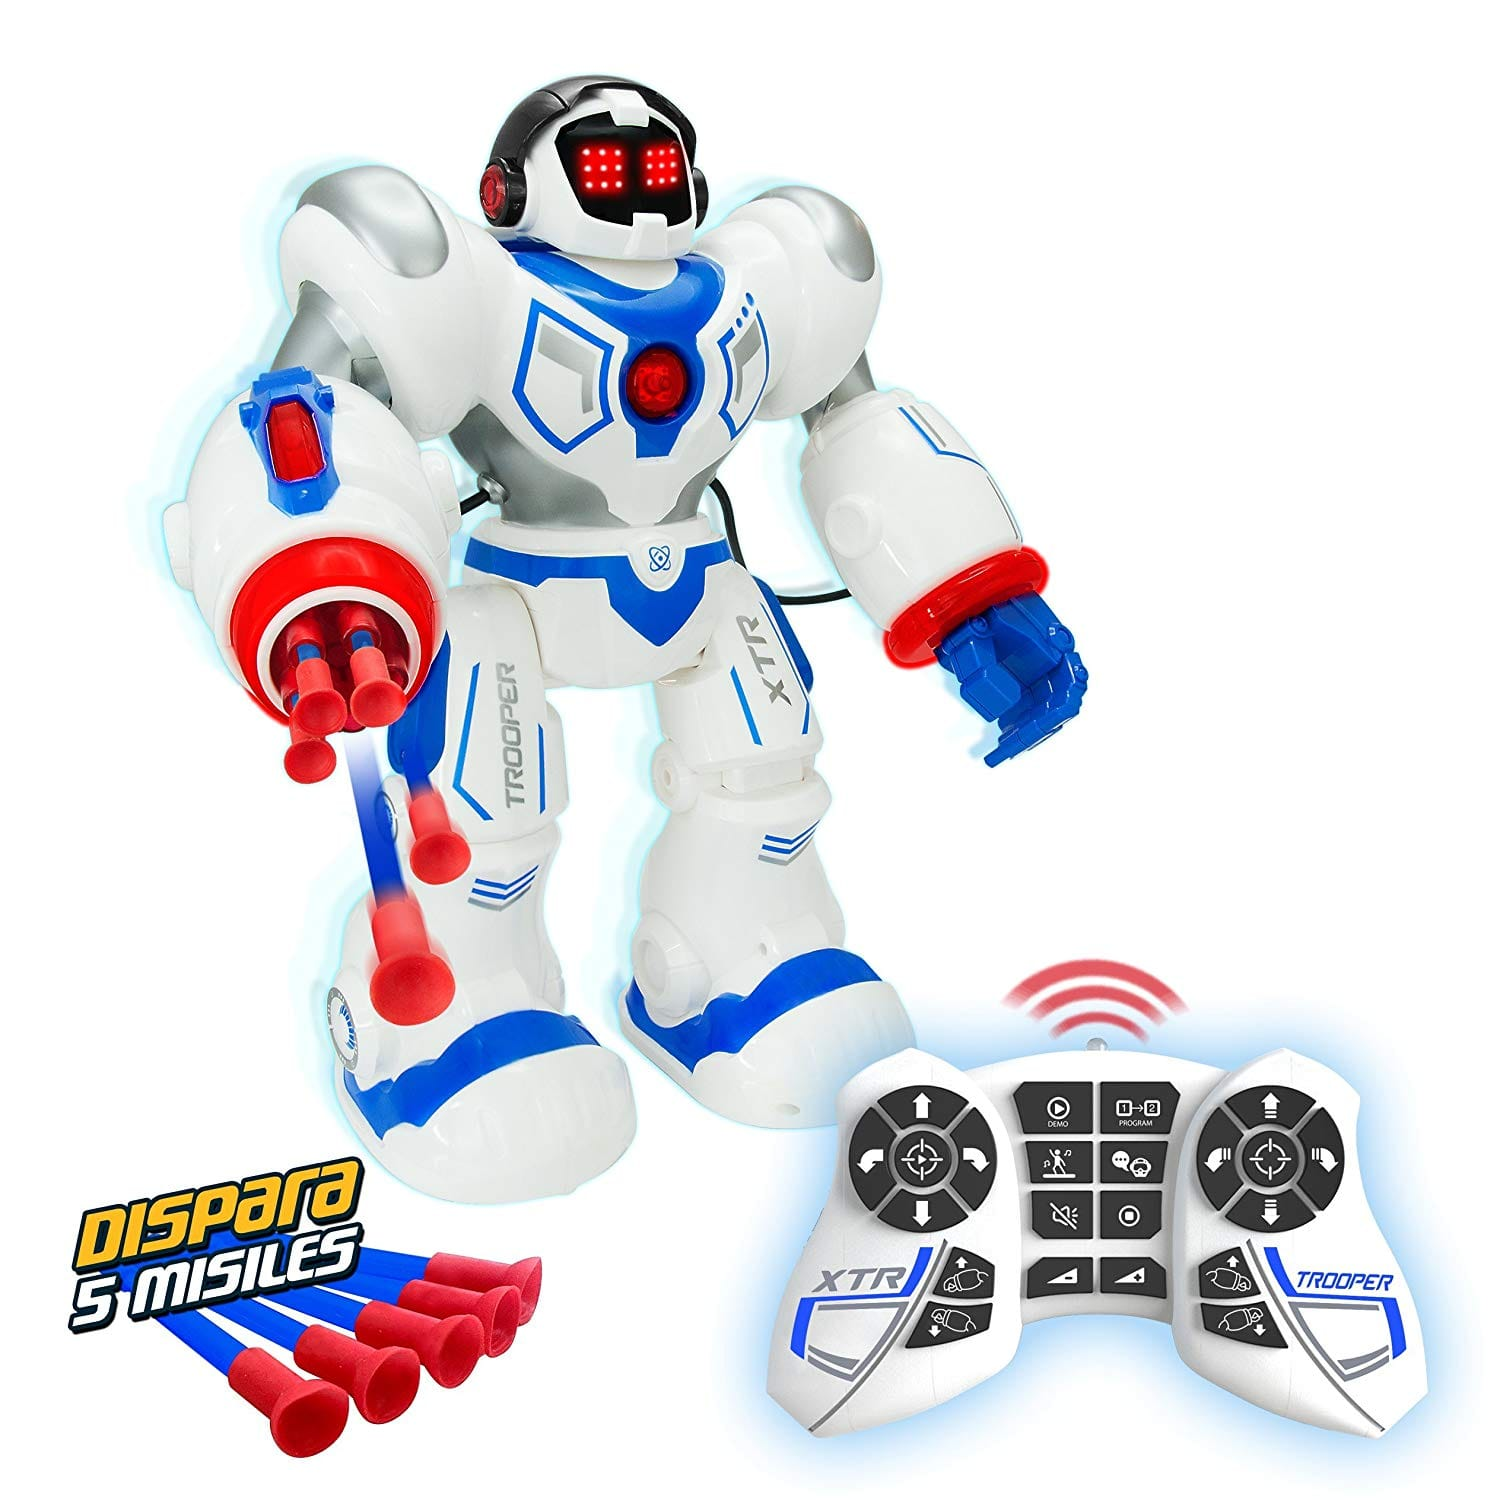 Remote Control Trooper Action Robot Toy with Shooting Missiles - $24 - Free Shipping for Prime Member